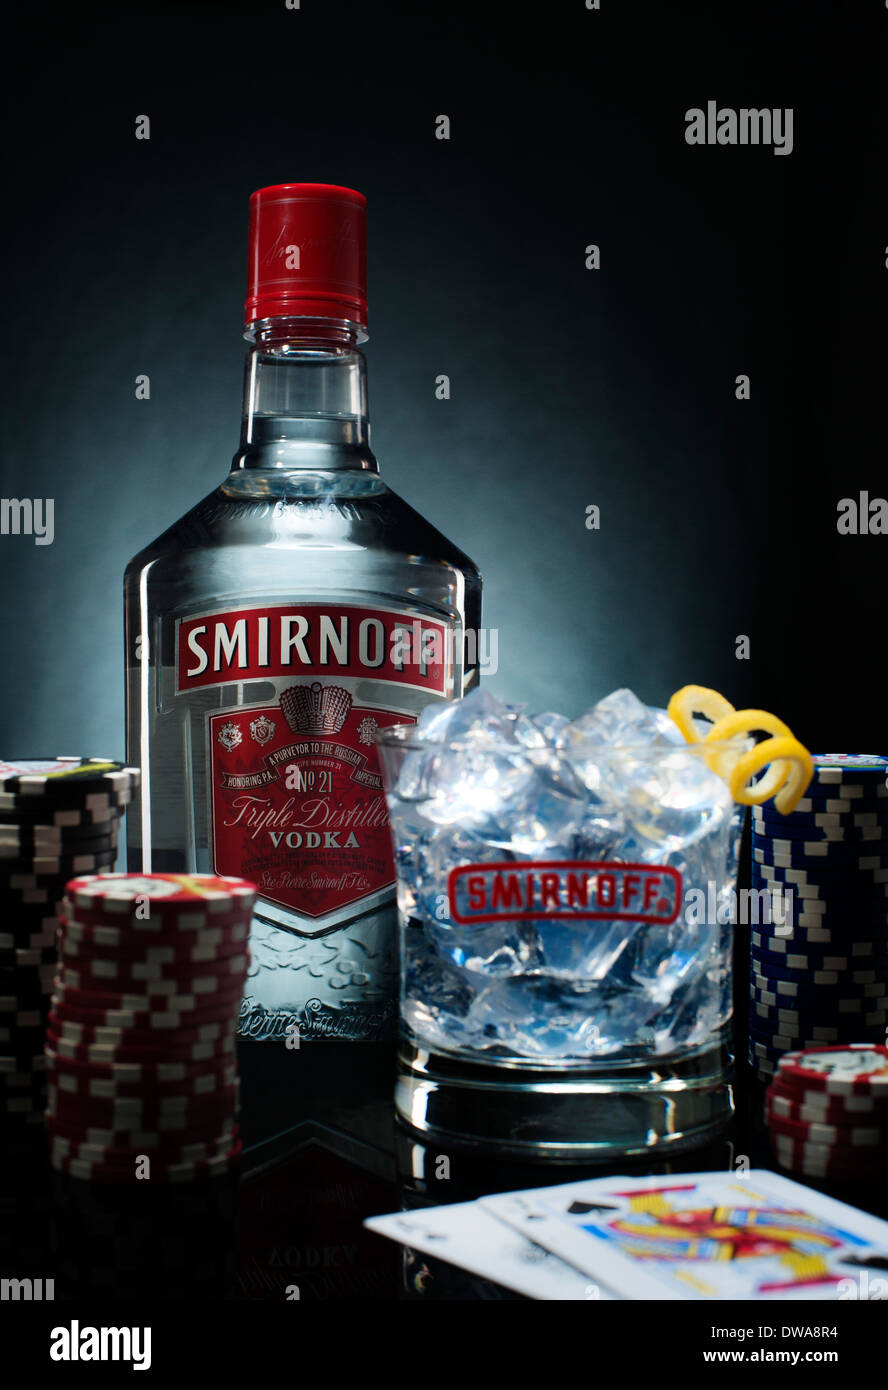 Smirnoff vodka bottle and glass on a table with poker chips and stock photo royalty free image - Picture of smirnoff vodka bottle ...